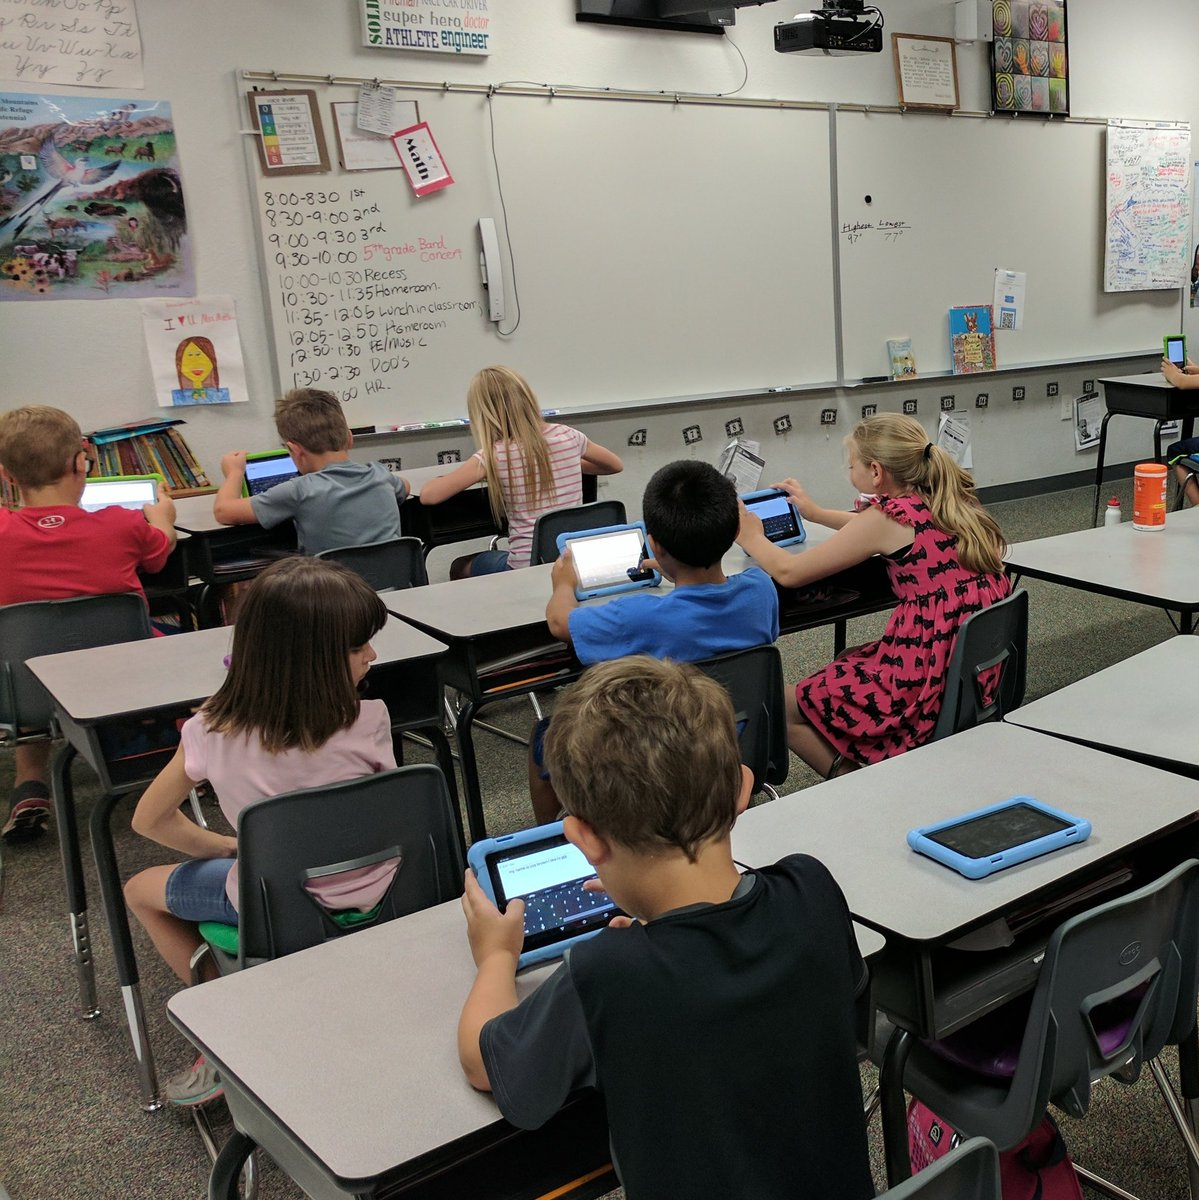 Here are future 3rd graders. Had them use @Seesaw, in the 15 minutes I had them, they took a selfie, captioned it and posted it. #easy <br>http://pic.twitter.com/53VBf4GhBD